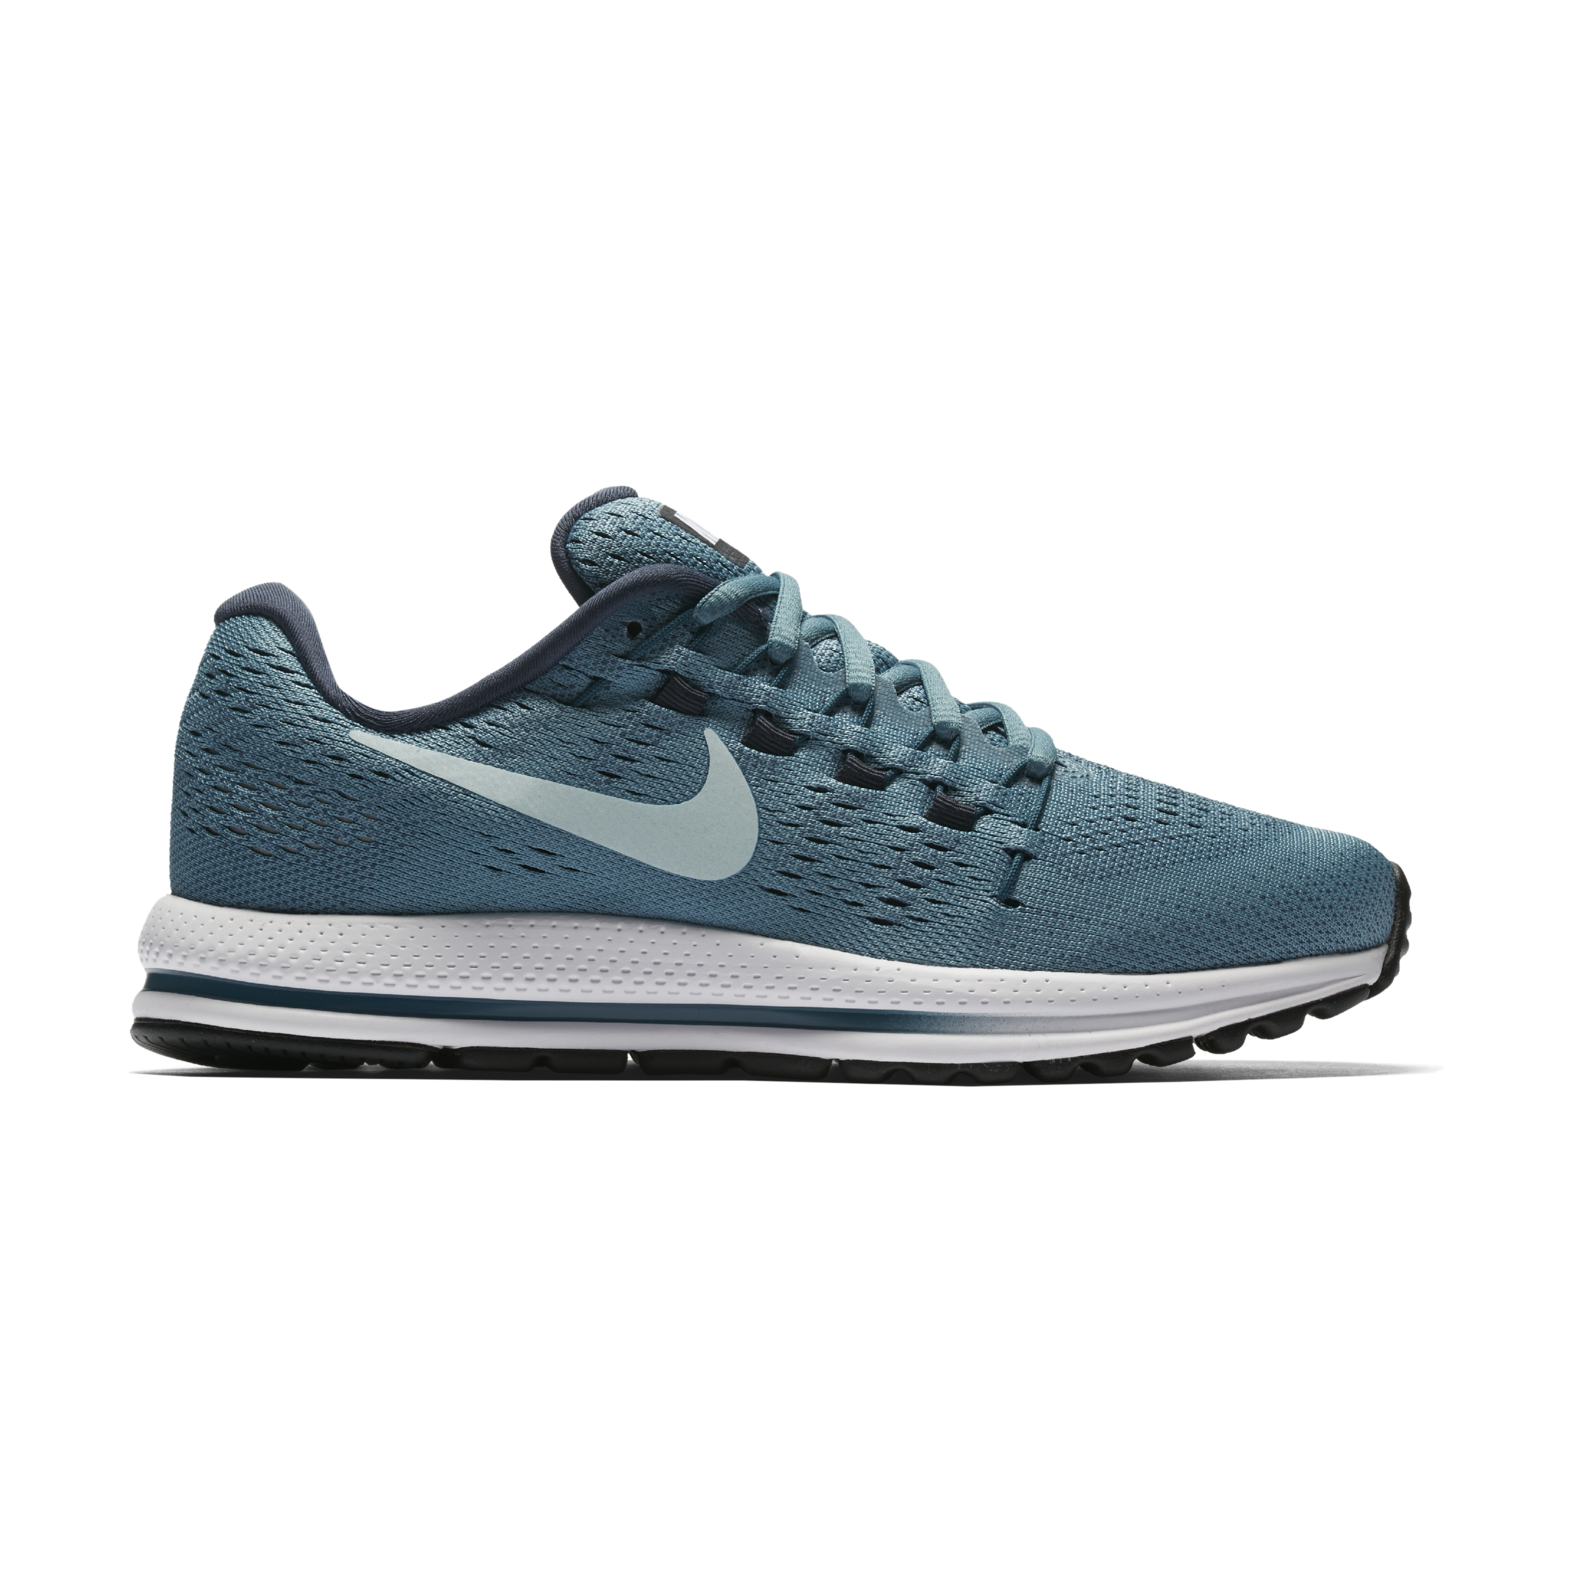 info for 5411a 29886 NIKE AIR ZOOM VOMERO 12 LADIES